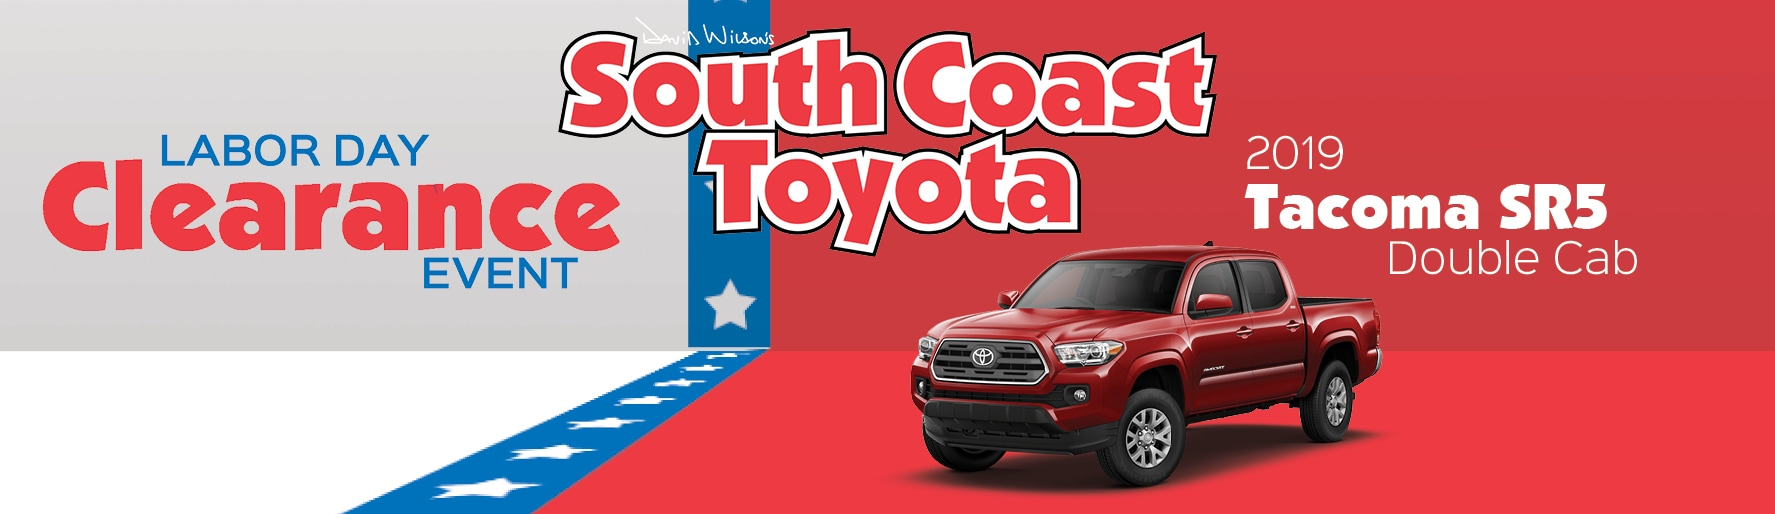 South Coast Toyota: Your Go-to Toyota Dealership in Costa